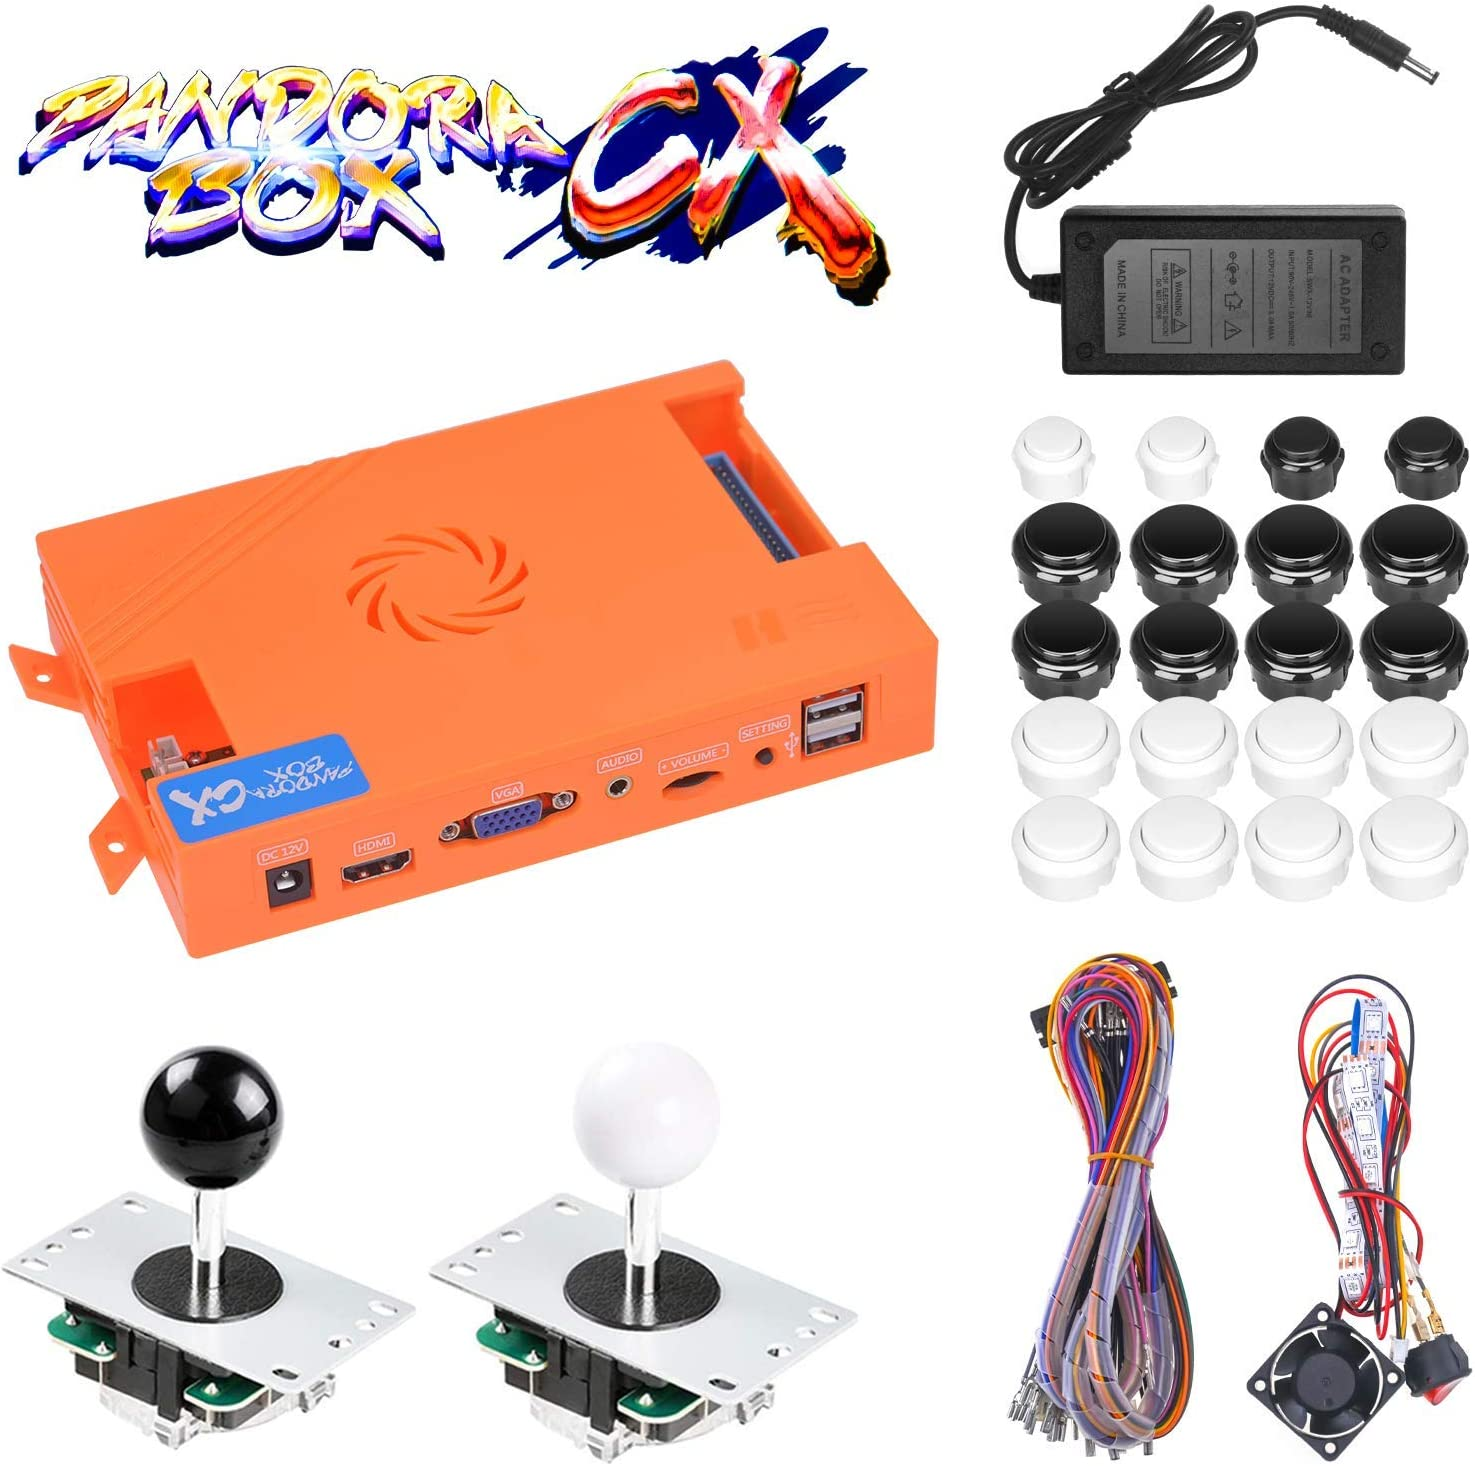 TAPDRA 3A Original Pandora Box CX 2800 in 1 Home Arcade Board Full DIY Kit  DIY with Harness Cable/Power Switch Adapter, HDMI VGA 720P LCD Monitor, ...